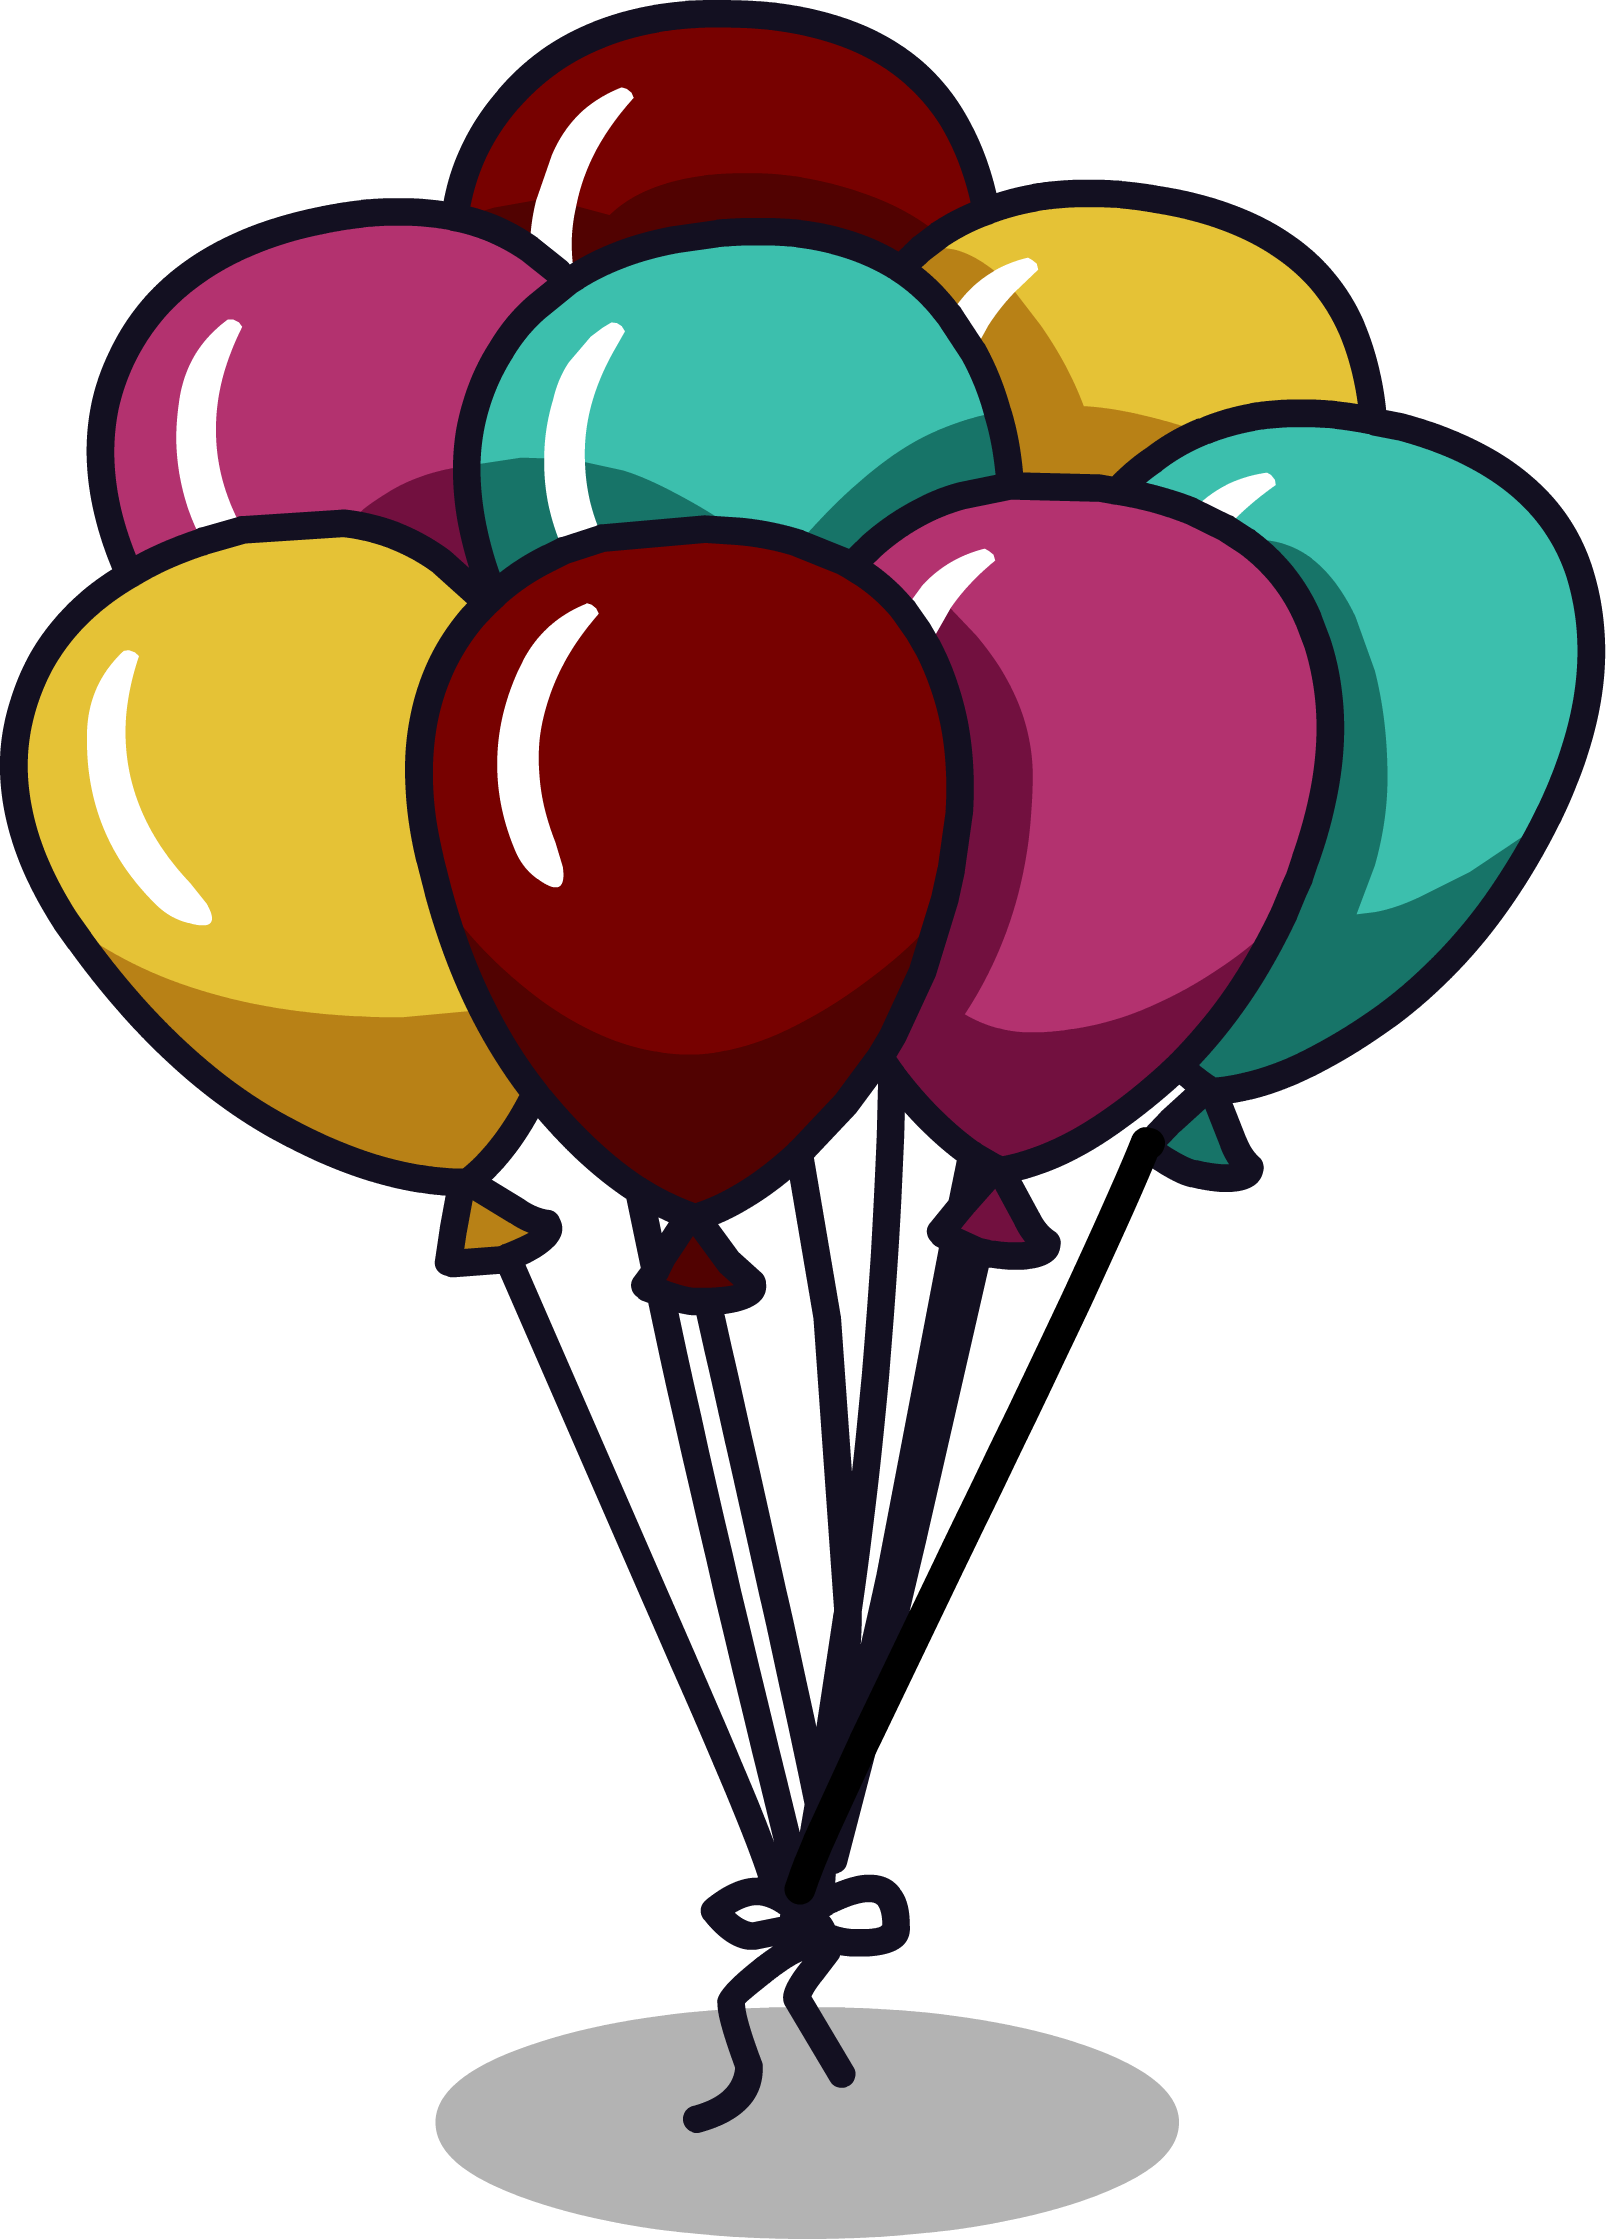 Attirant Balloon Bunch. 749 Furniture Icon